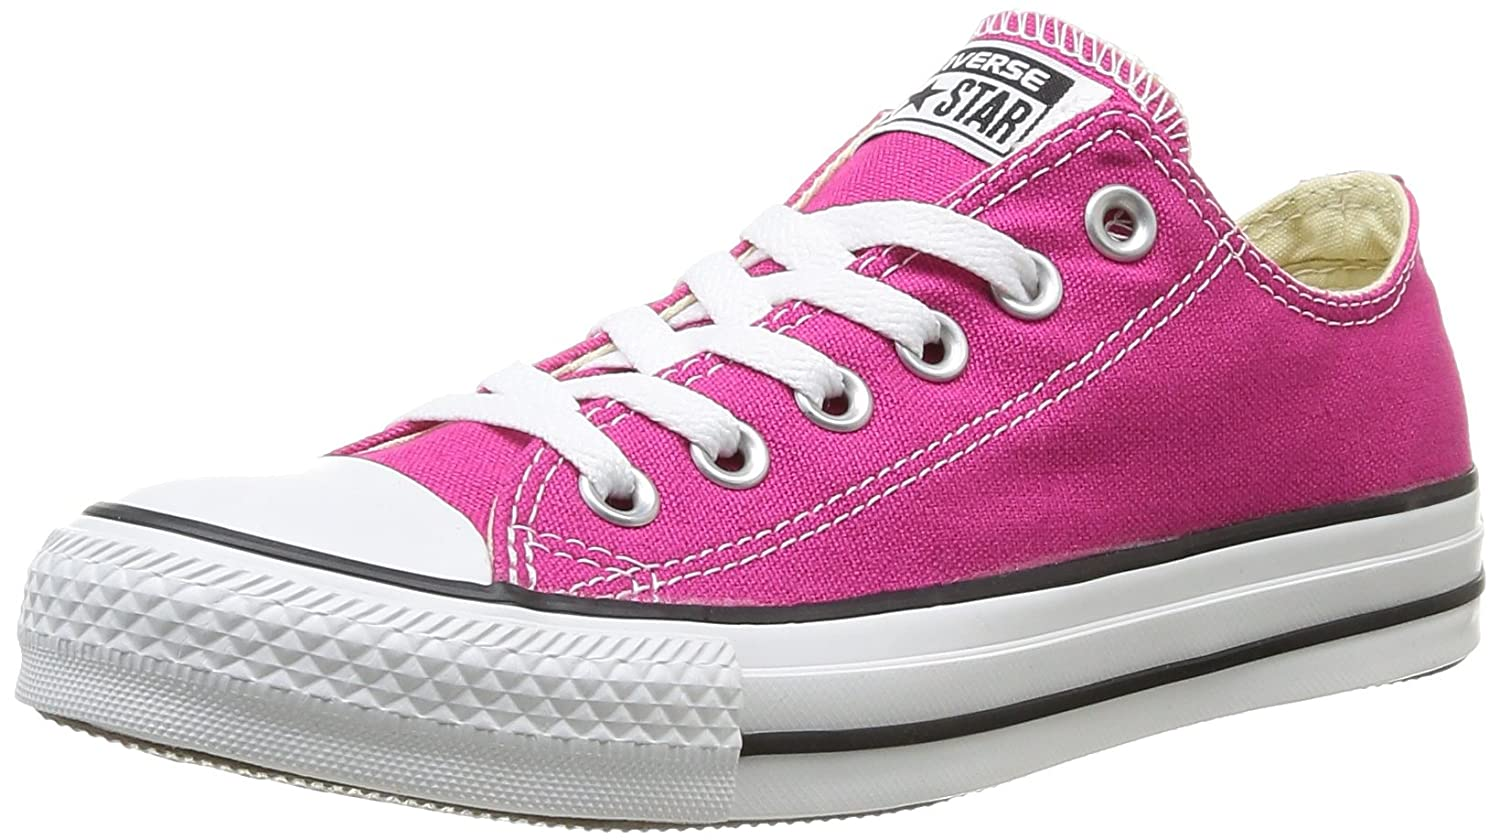 Converse B078HNRXYD Chuck Taylor All Star All Baskets Core, Baskets Mixte Adulte Rose 94dfa27 - automaticcouplings.space